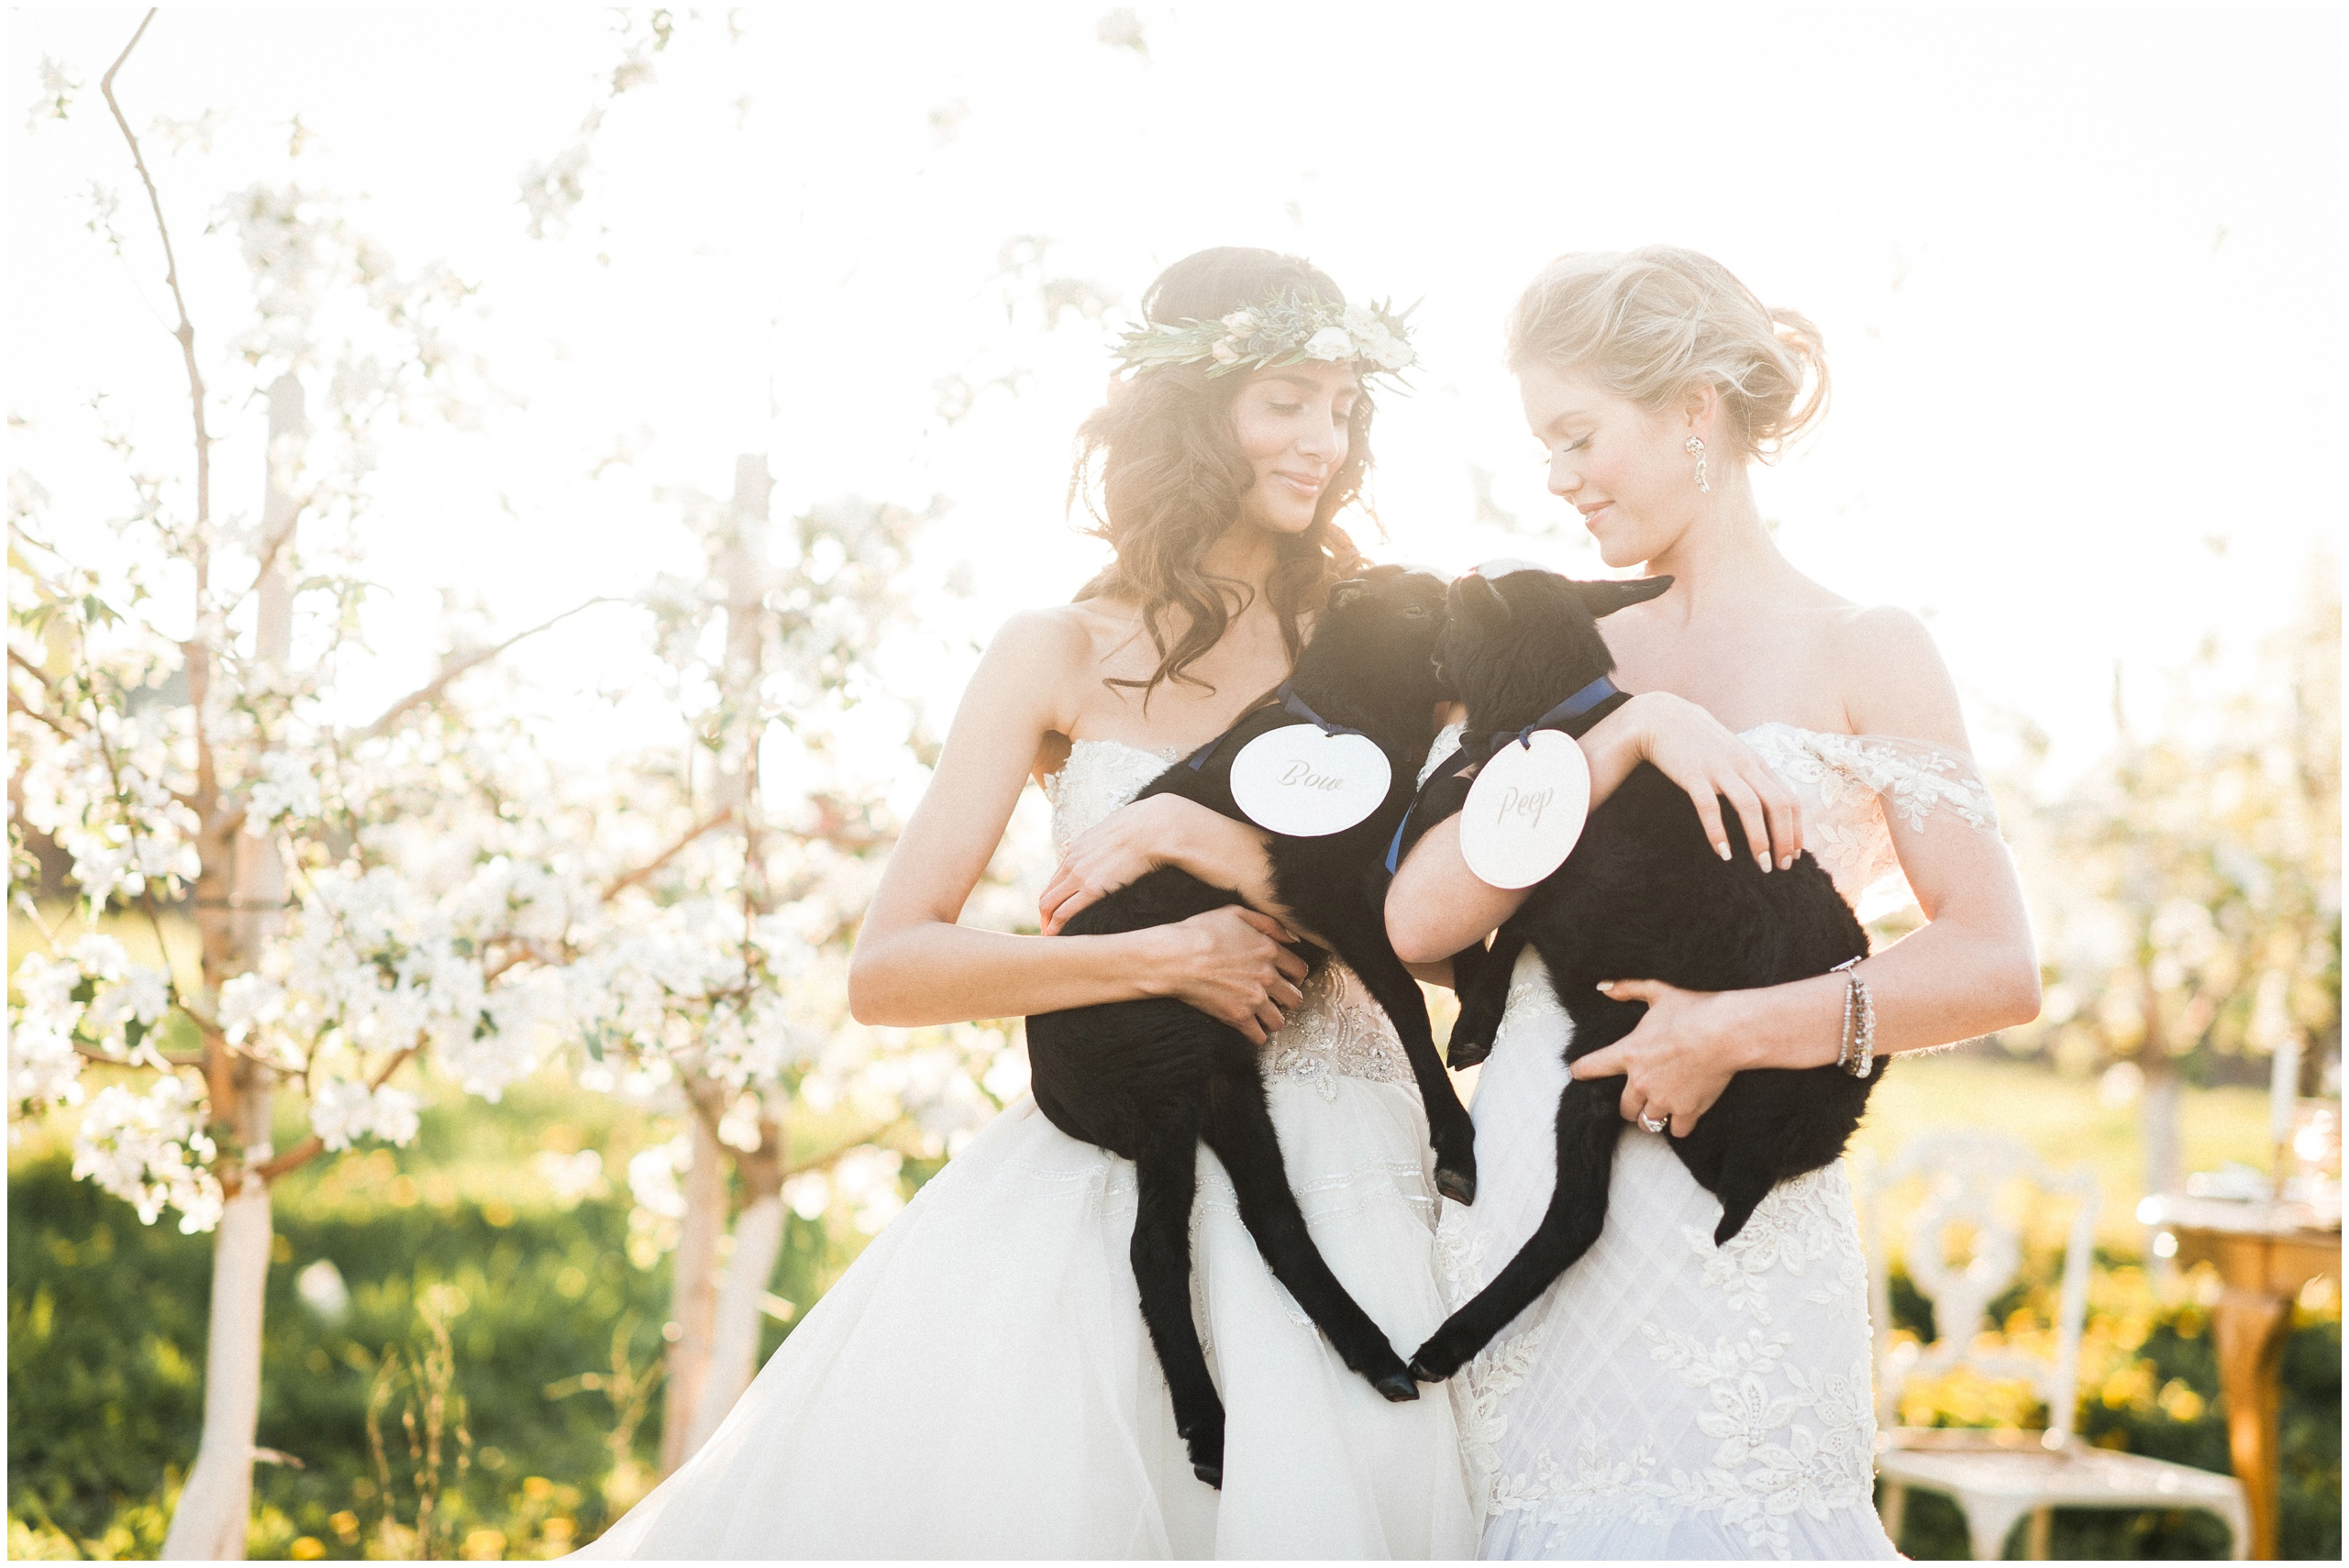 Wedding Inspiration: Brides wearing flower crowns and Ines Di Santo gowns holding baby lambs.